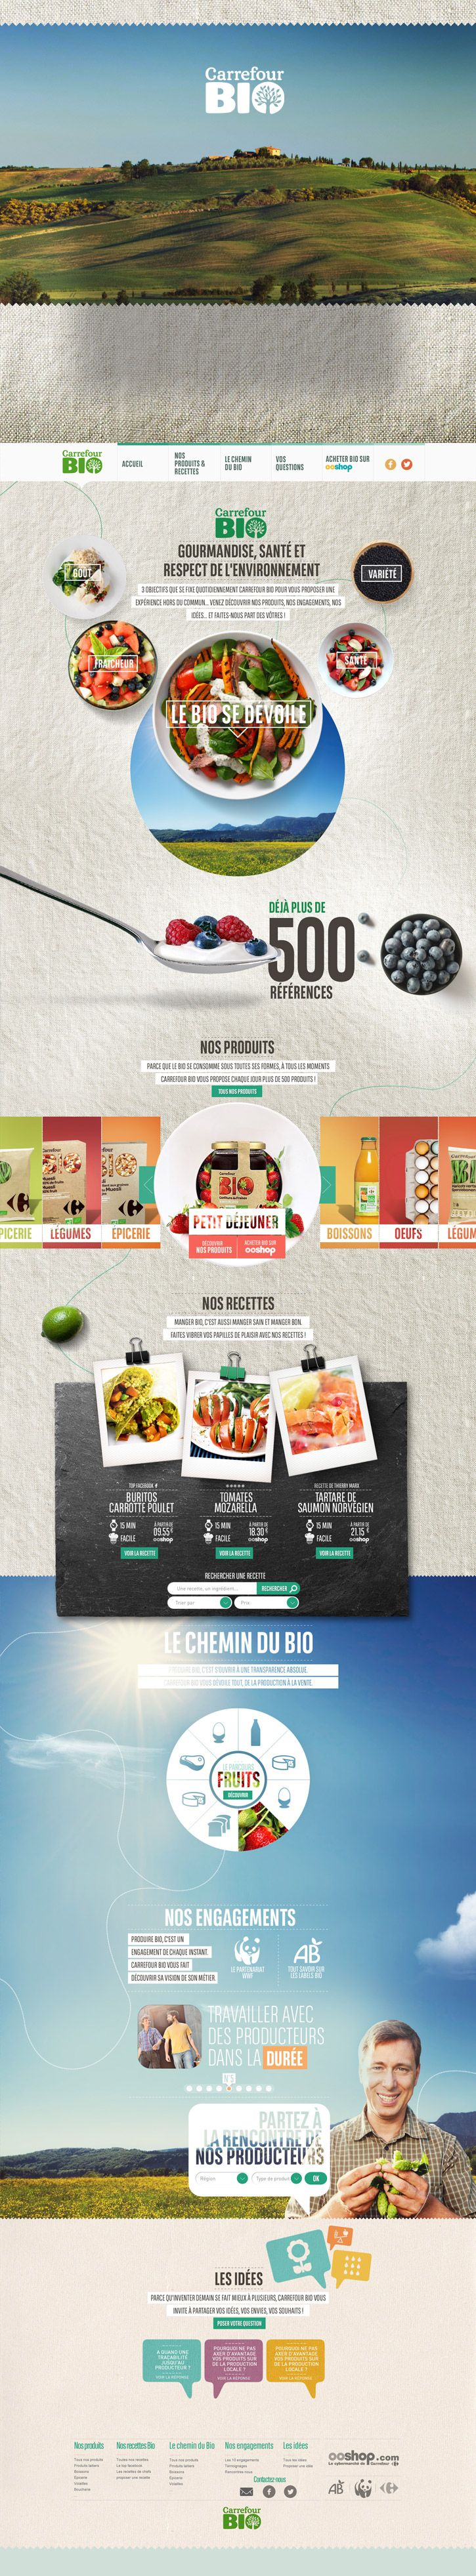 green Food | #webdesign #it #web #design #layout #userinterface #website #webdesign < repinned by www.BlickeDeeler.de | Take a look at www.WebsiteDesign-Hamburg.de